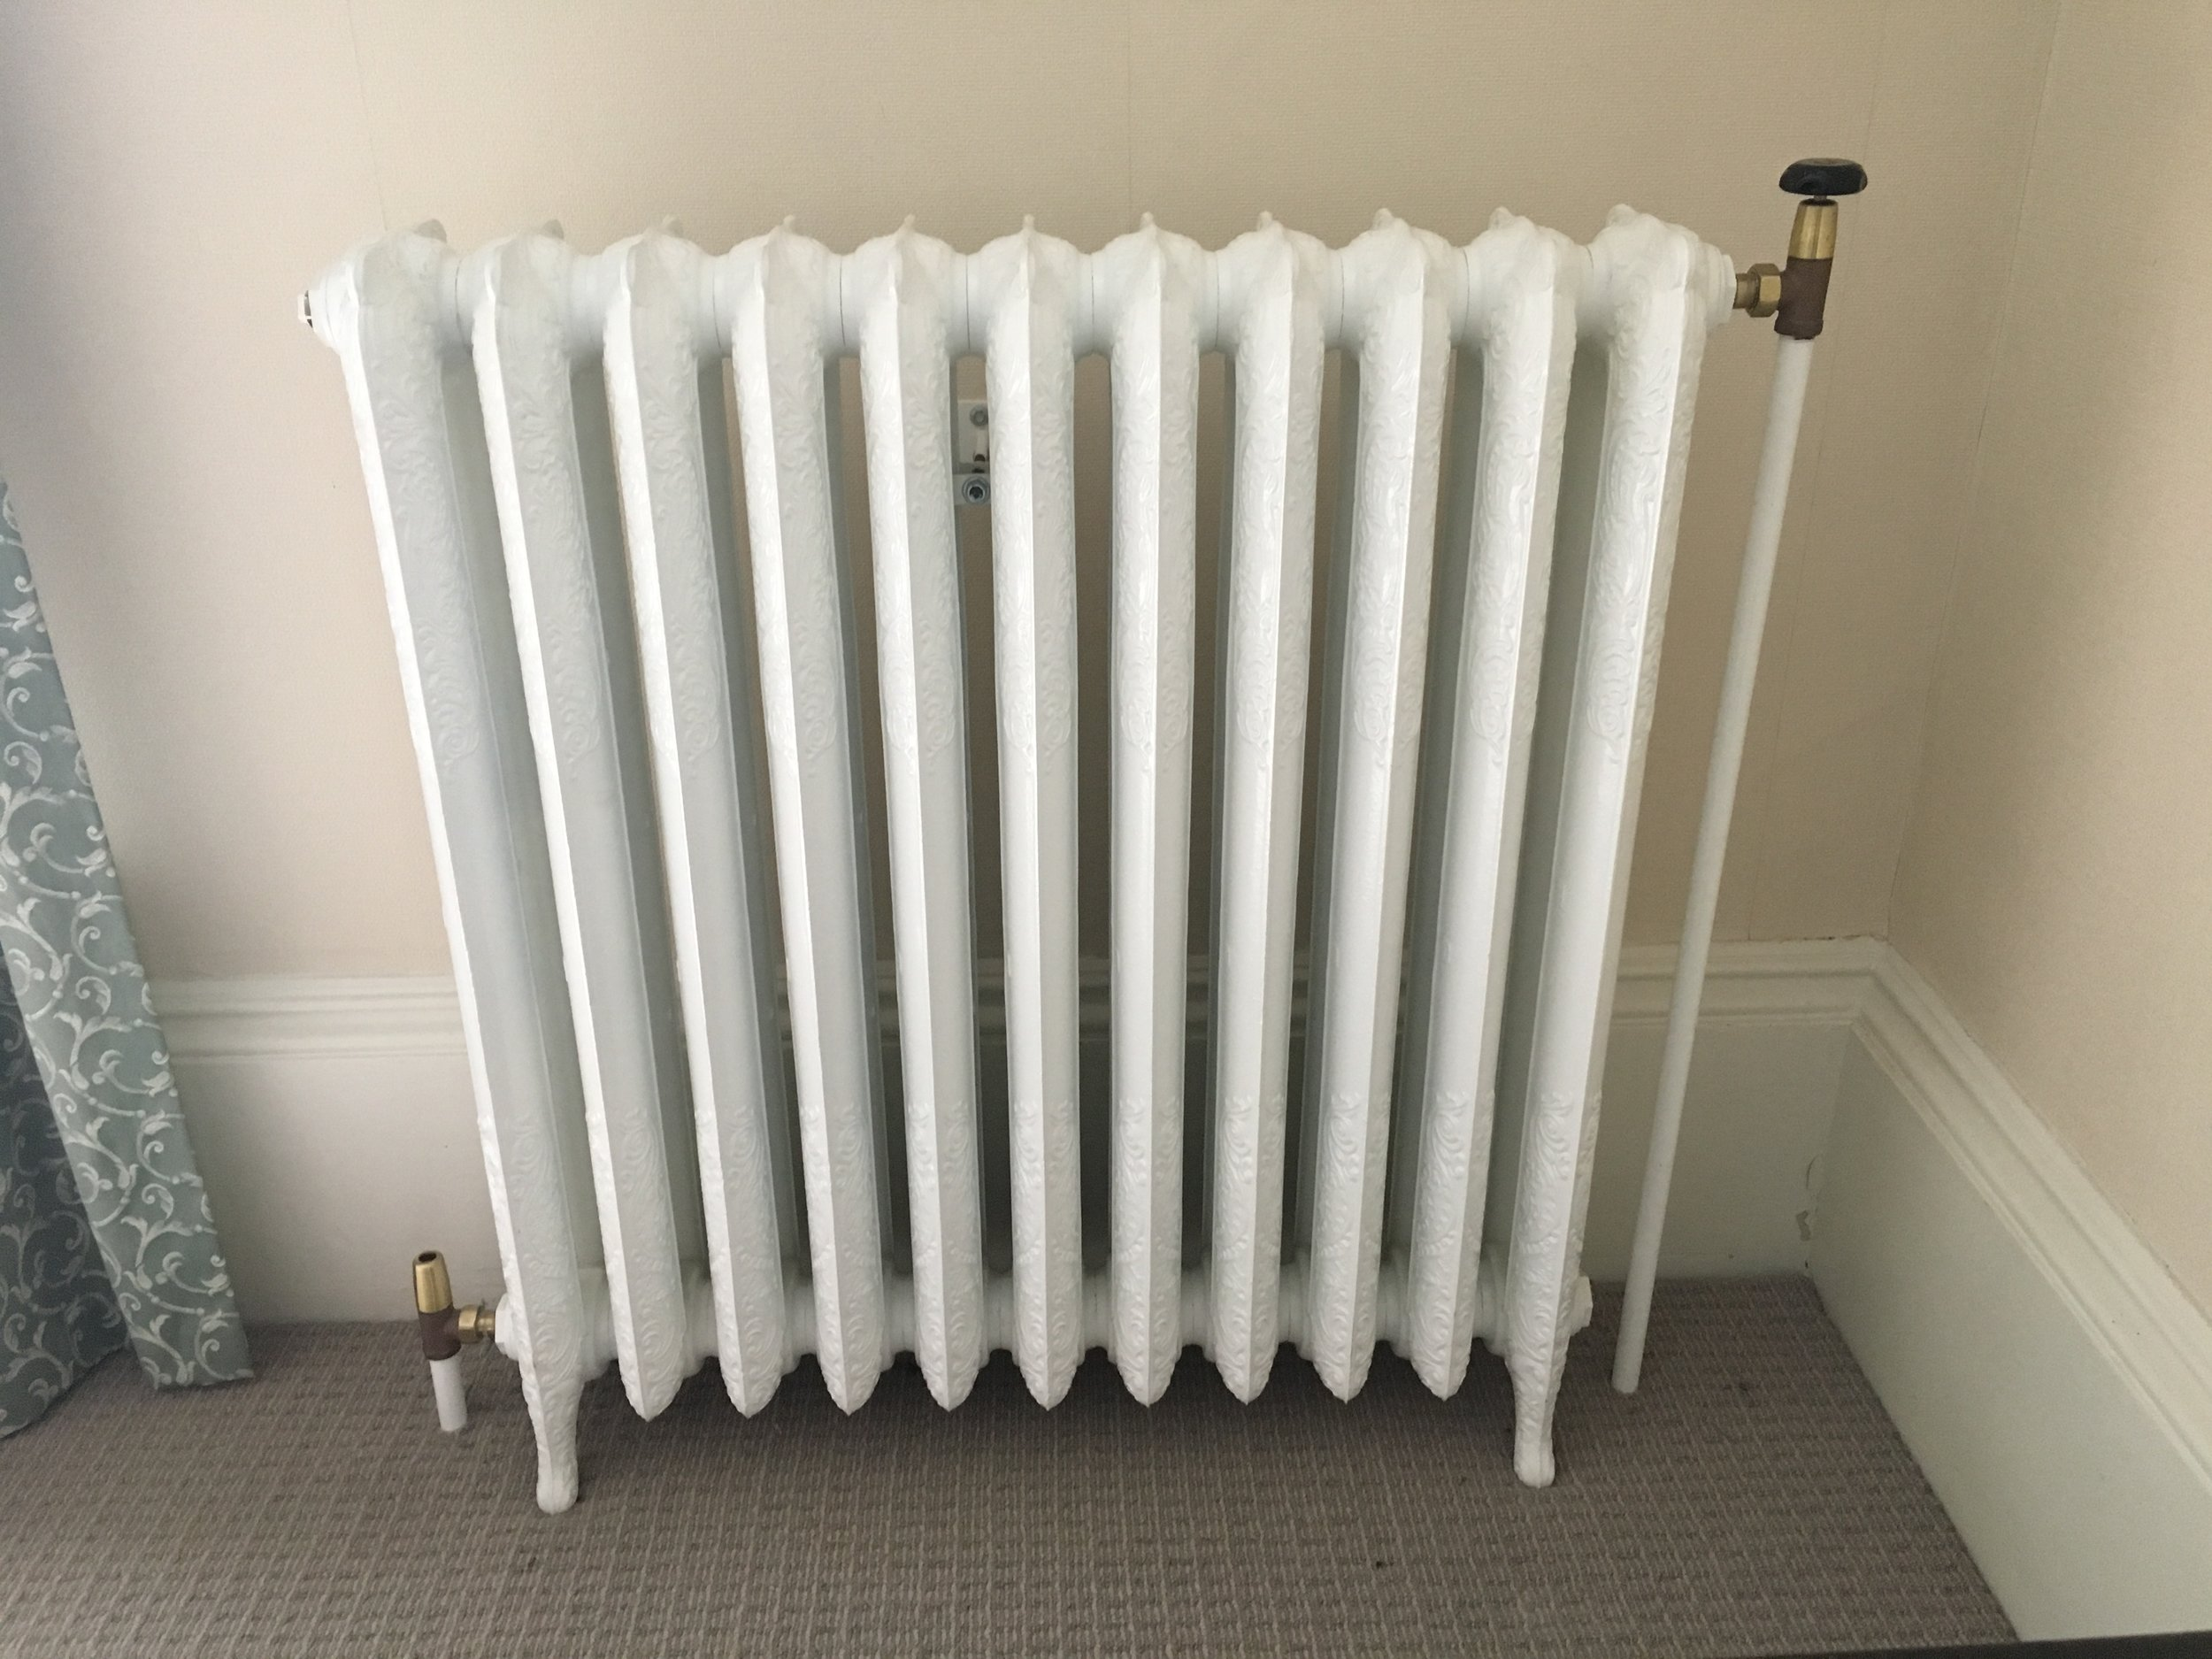 Traditional cast iron radiator in Melrose House